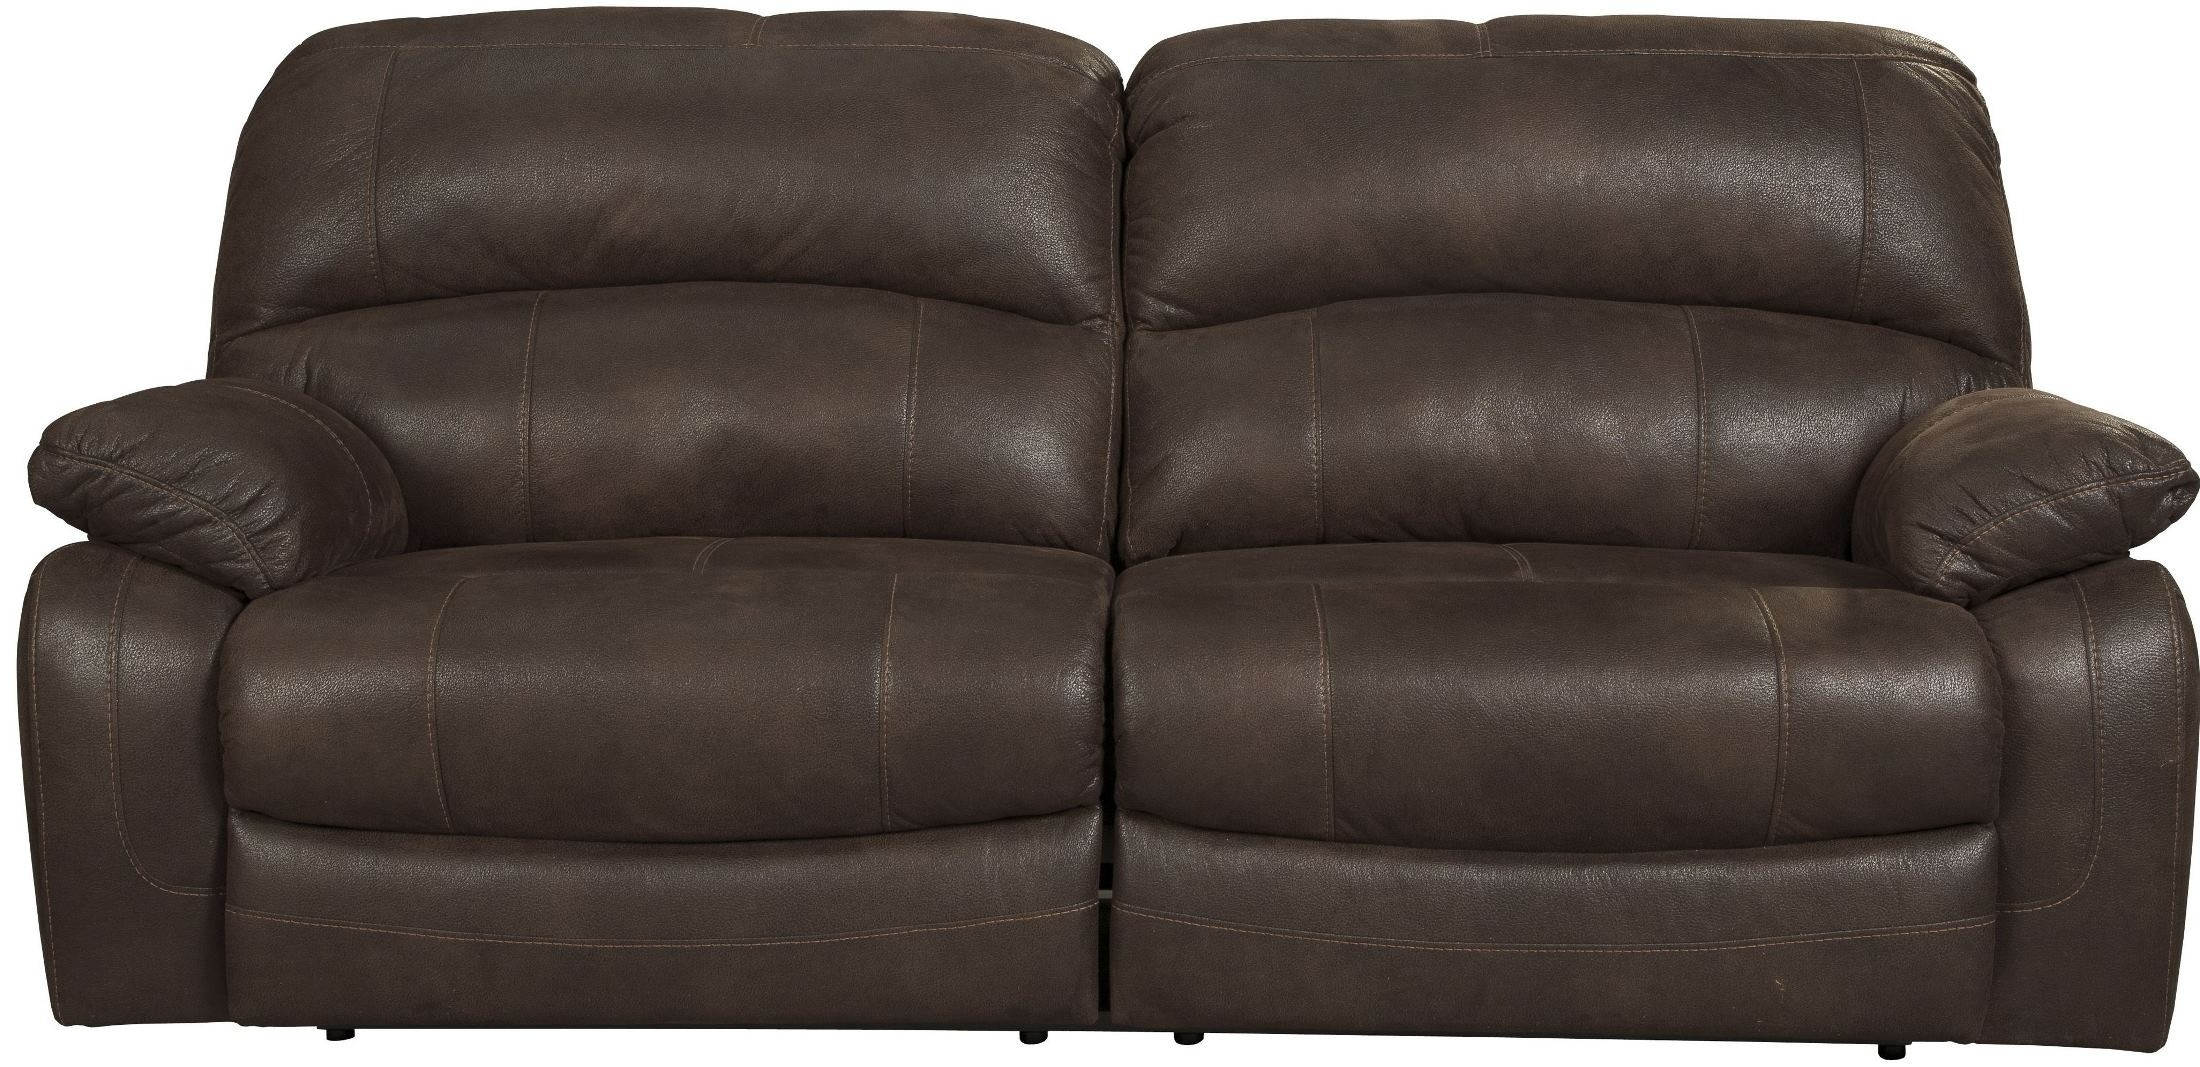 Zavier Truffle 2 Seat Power Reclining Sofa From Ashley (4290147 Pertaining To Widely Used 2 Seat Recliner Sofas (View 15 of 15)